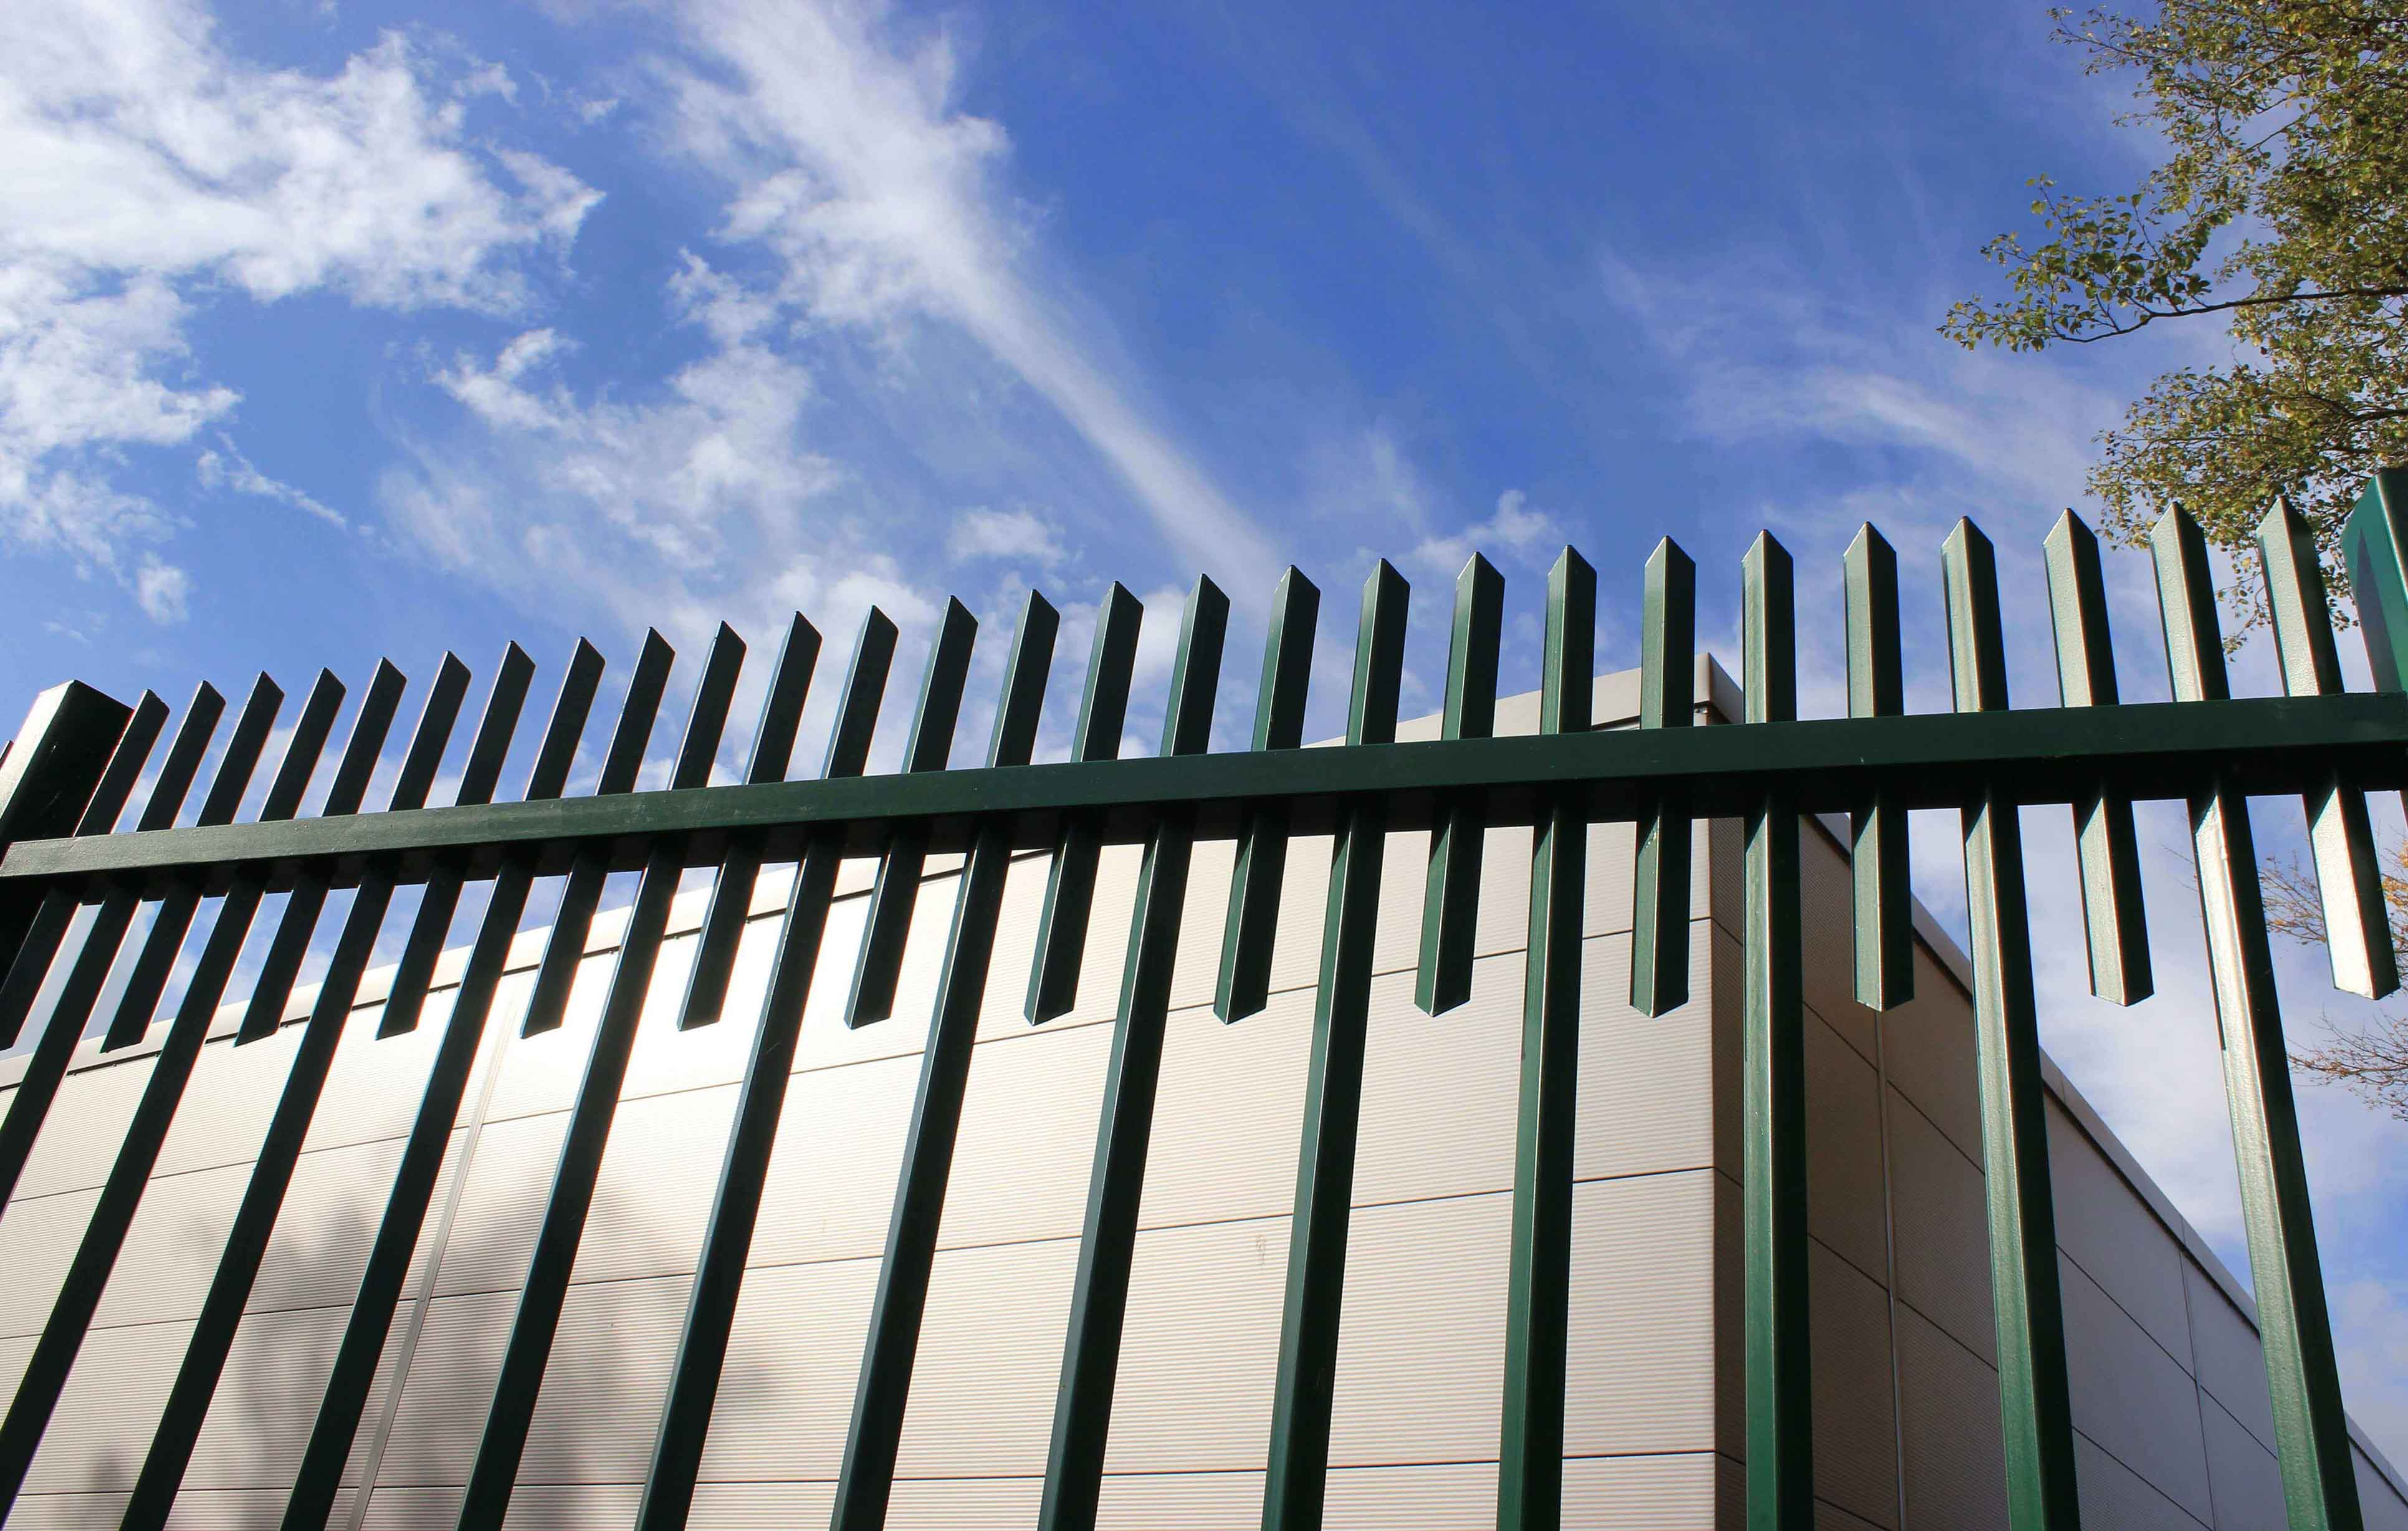 Barbican Extra Green Metal Security Fencing